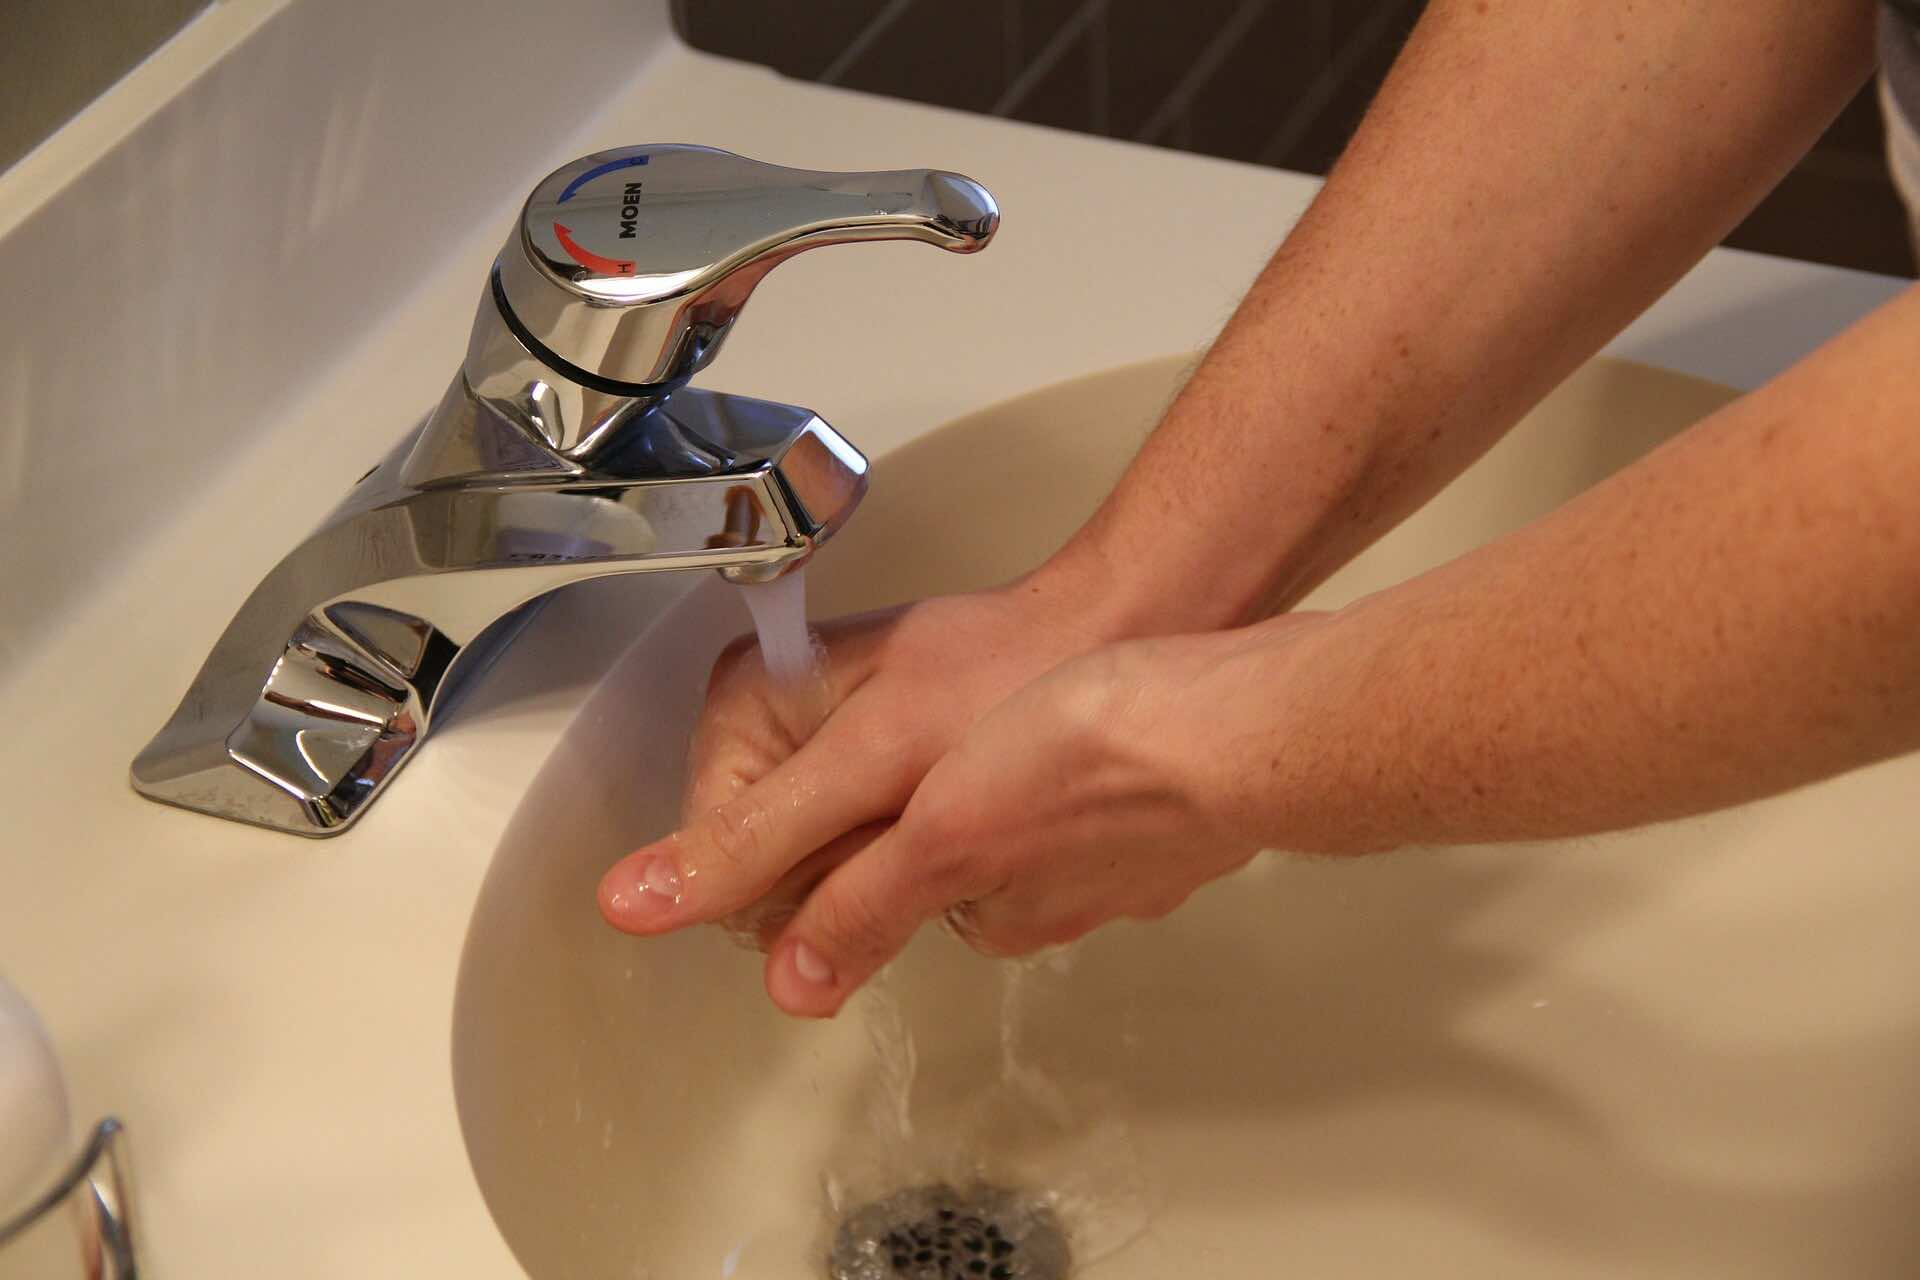 washing hands, preventing spread of norovirus